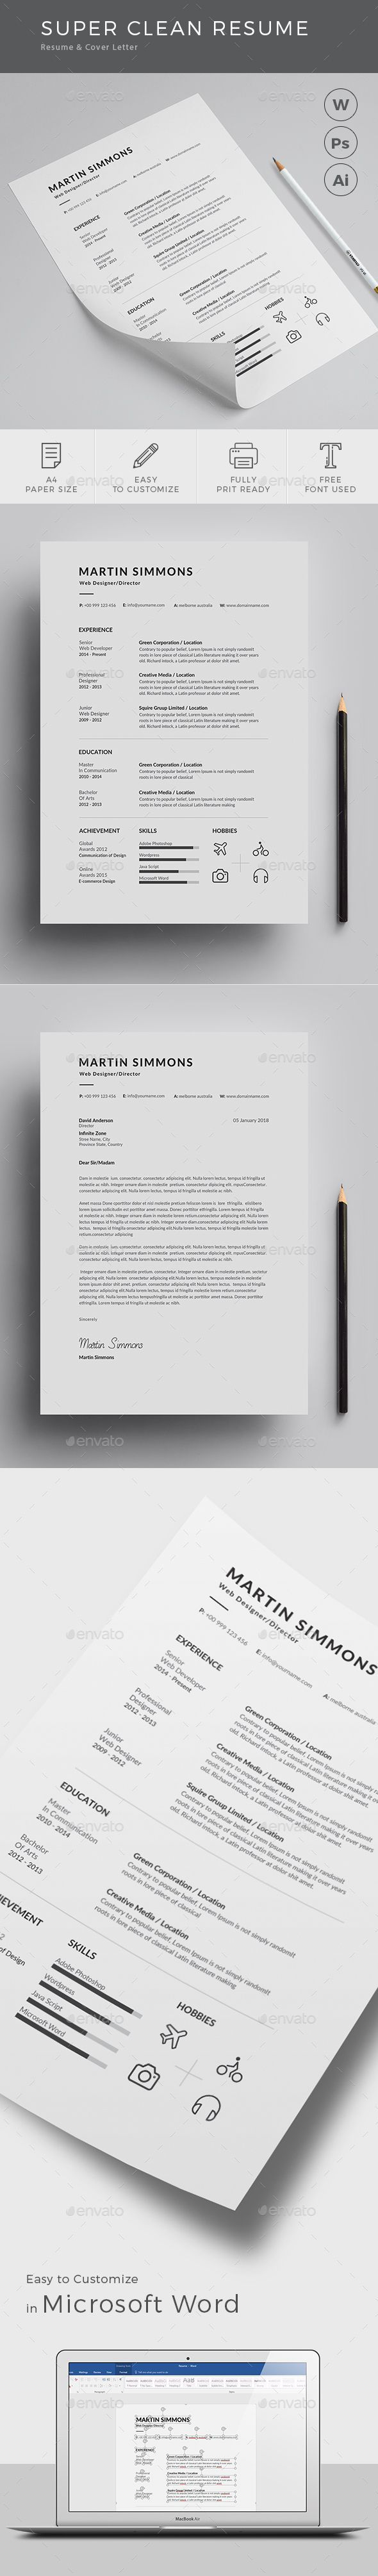 Best Resumes Examples 2012%0A Clean Resume cv template to help you land that great job  The flexible page